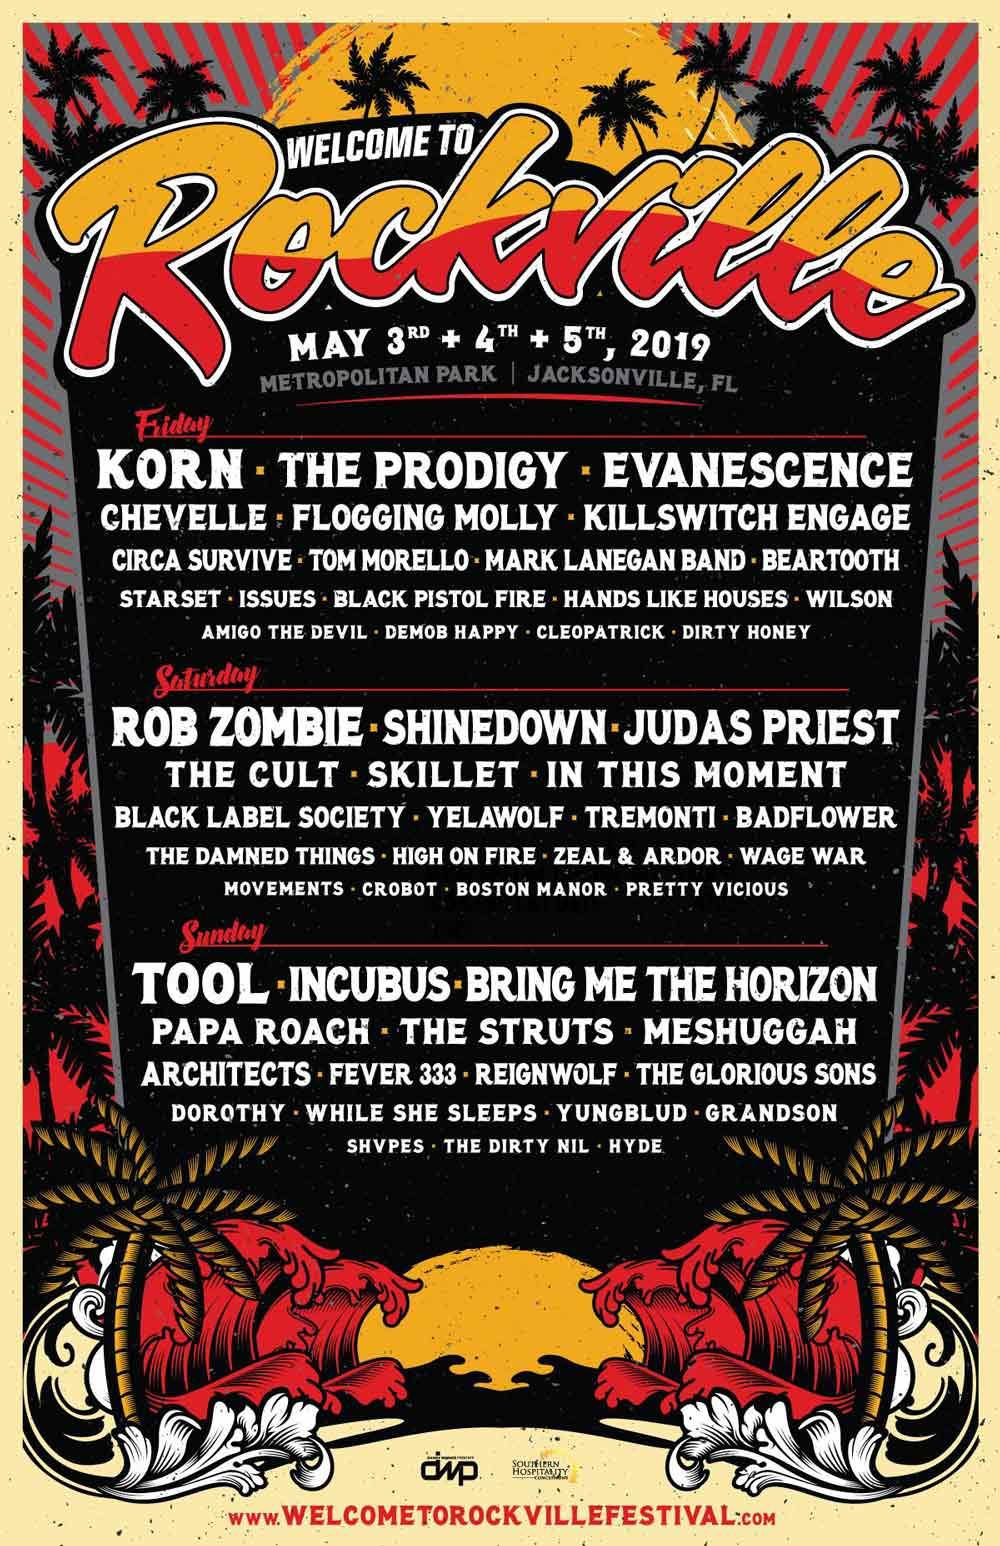 2019 welcome to rockfville lineup poster